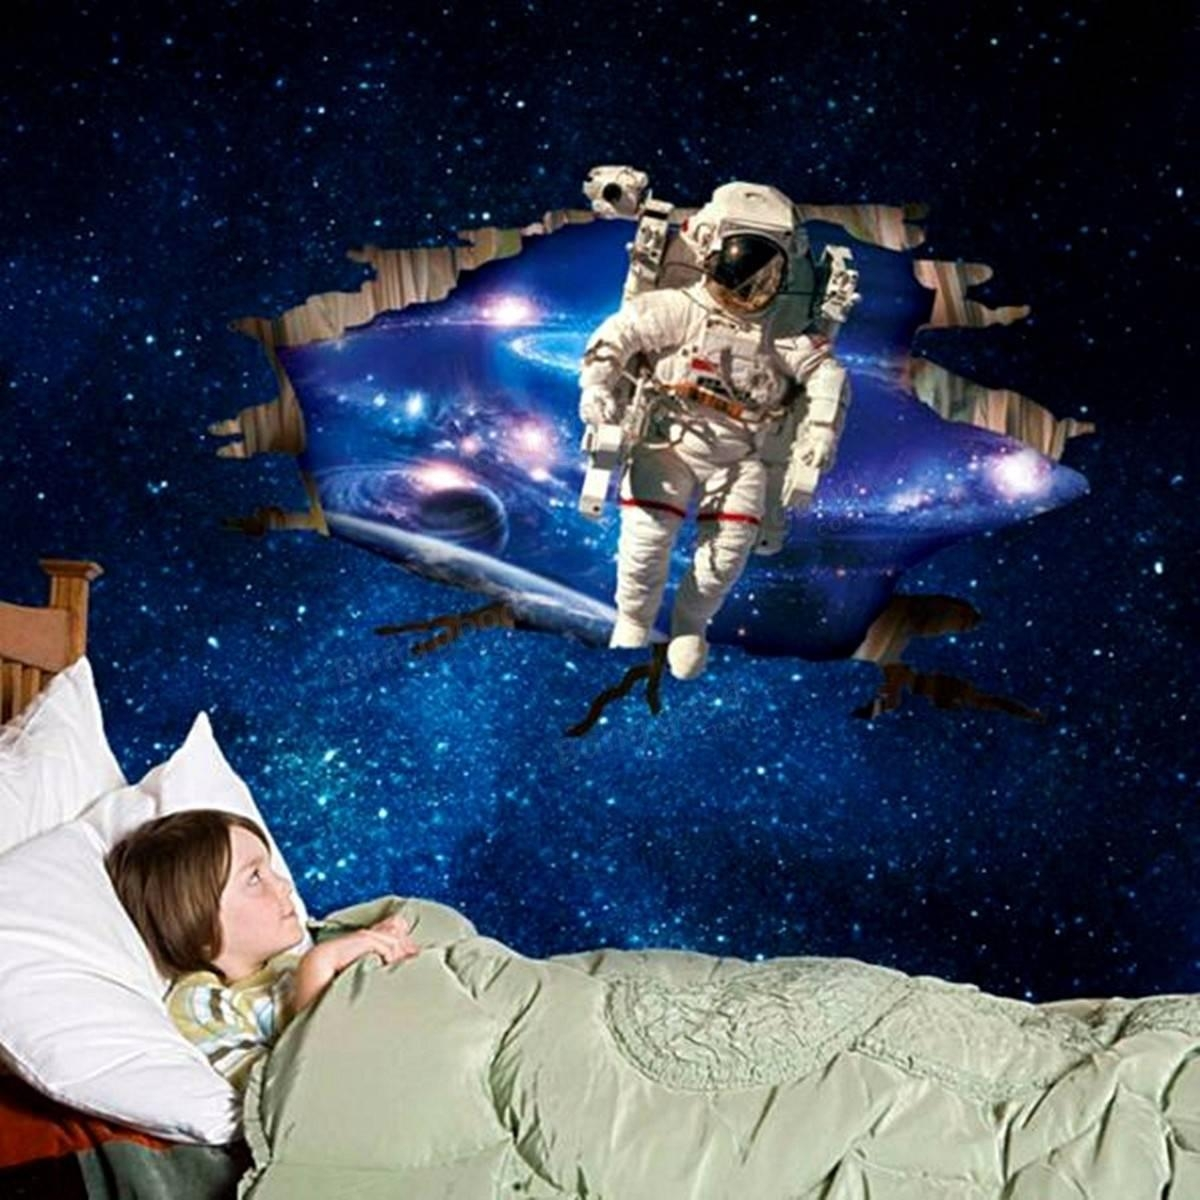 3D Wall Stickers Wallpaper Space Astronauts Decor Kids Room Decal Regarding Outer Space Wall Art (View 10 of 20)